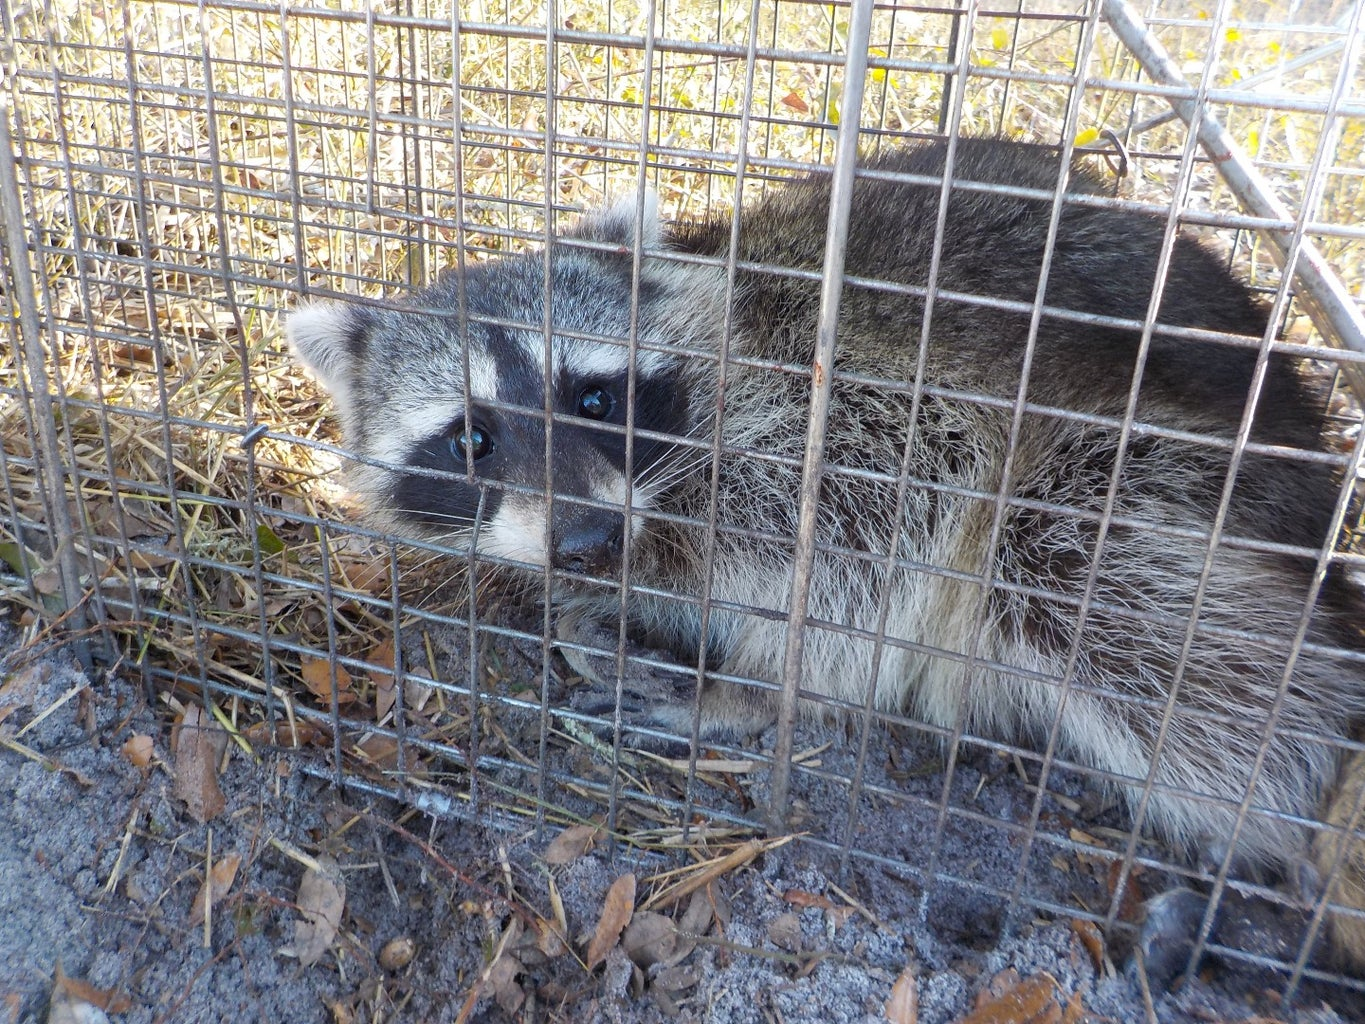 Safe and Proper Handling of Raccoons